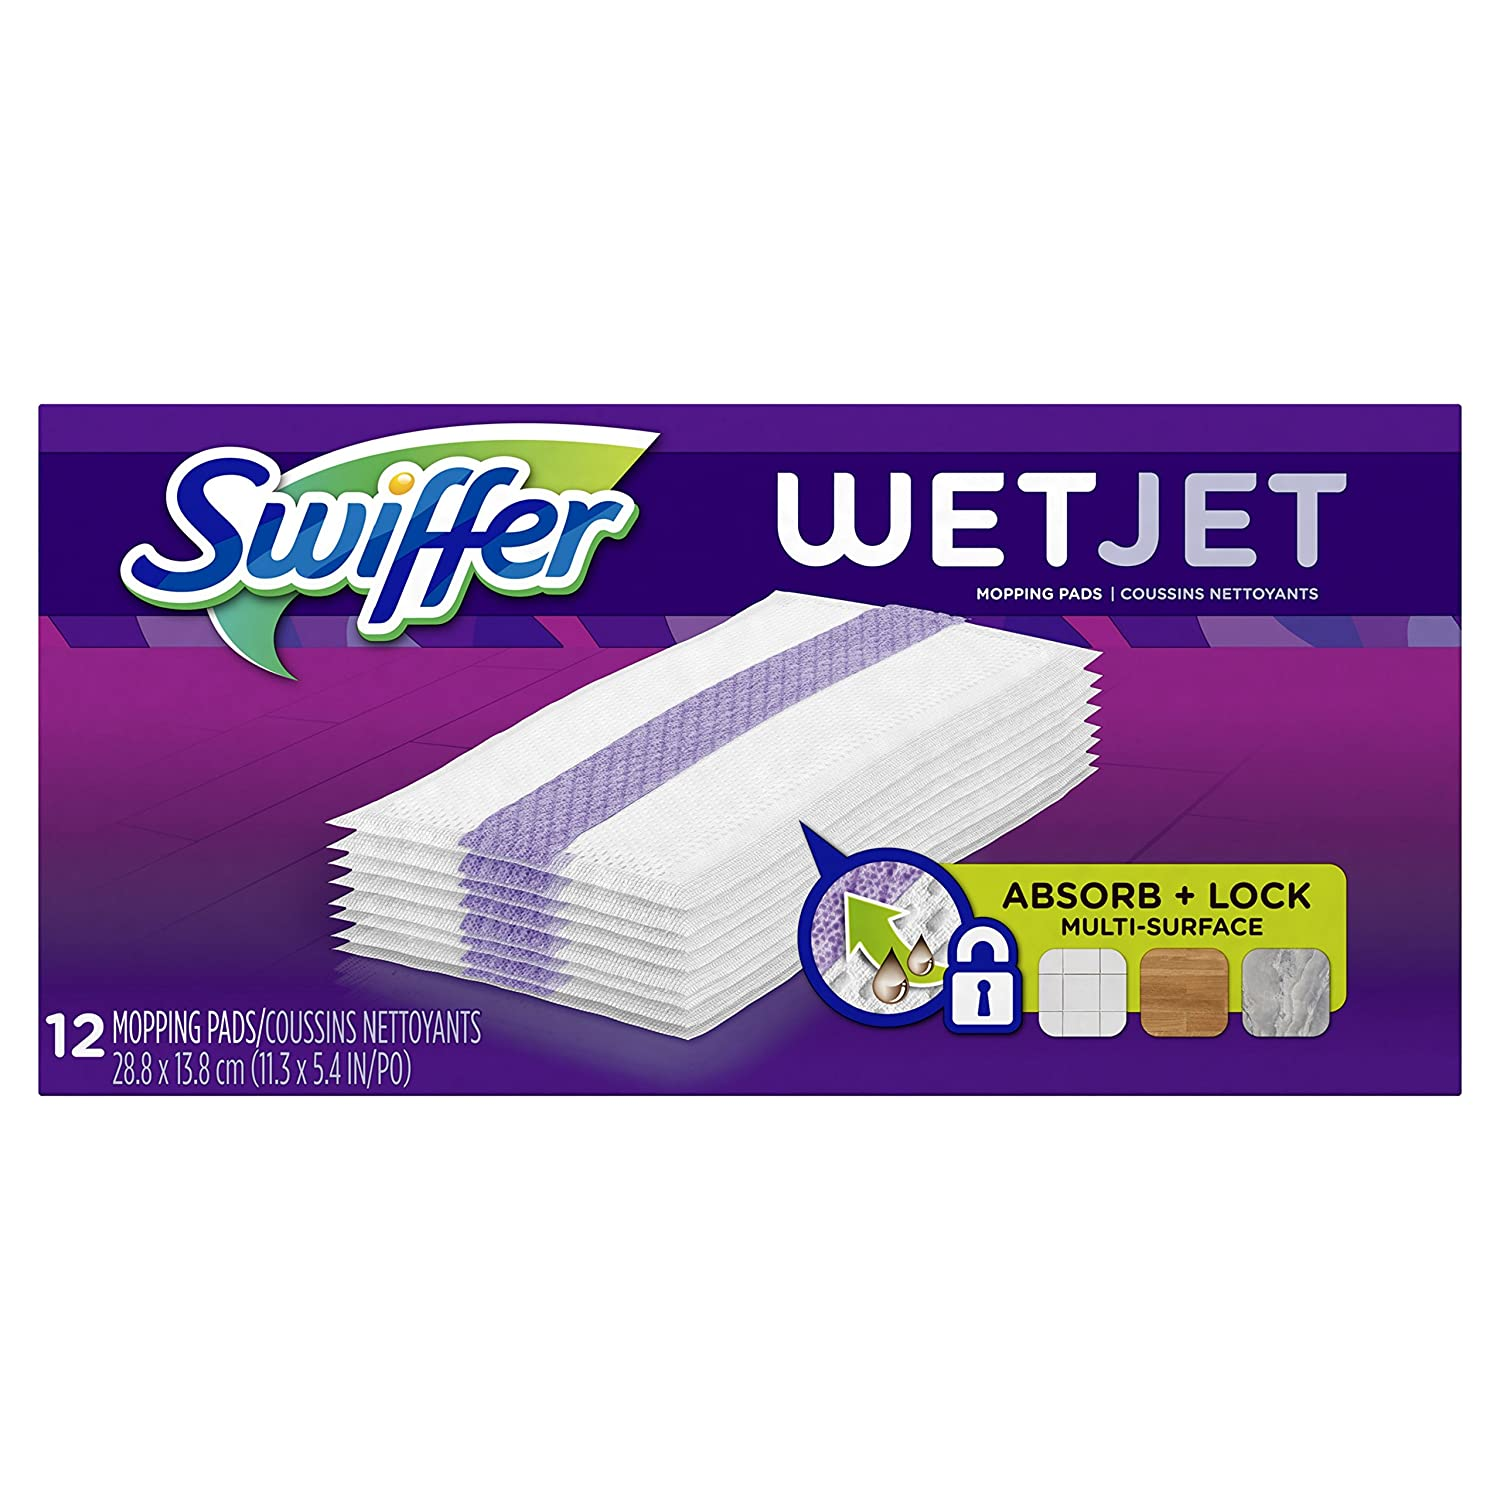 Swiffer WetJet Hardwood Floor Cleaner, Spray Mop Pad Refill, Multi Surface, 12 Count (Packaging May Vary) thomaswi